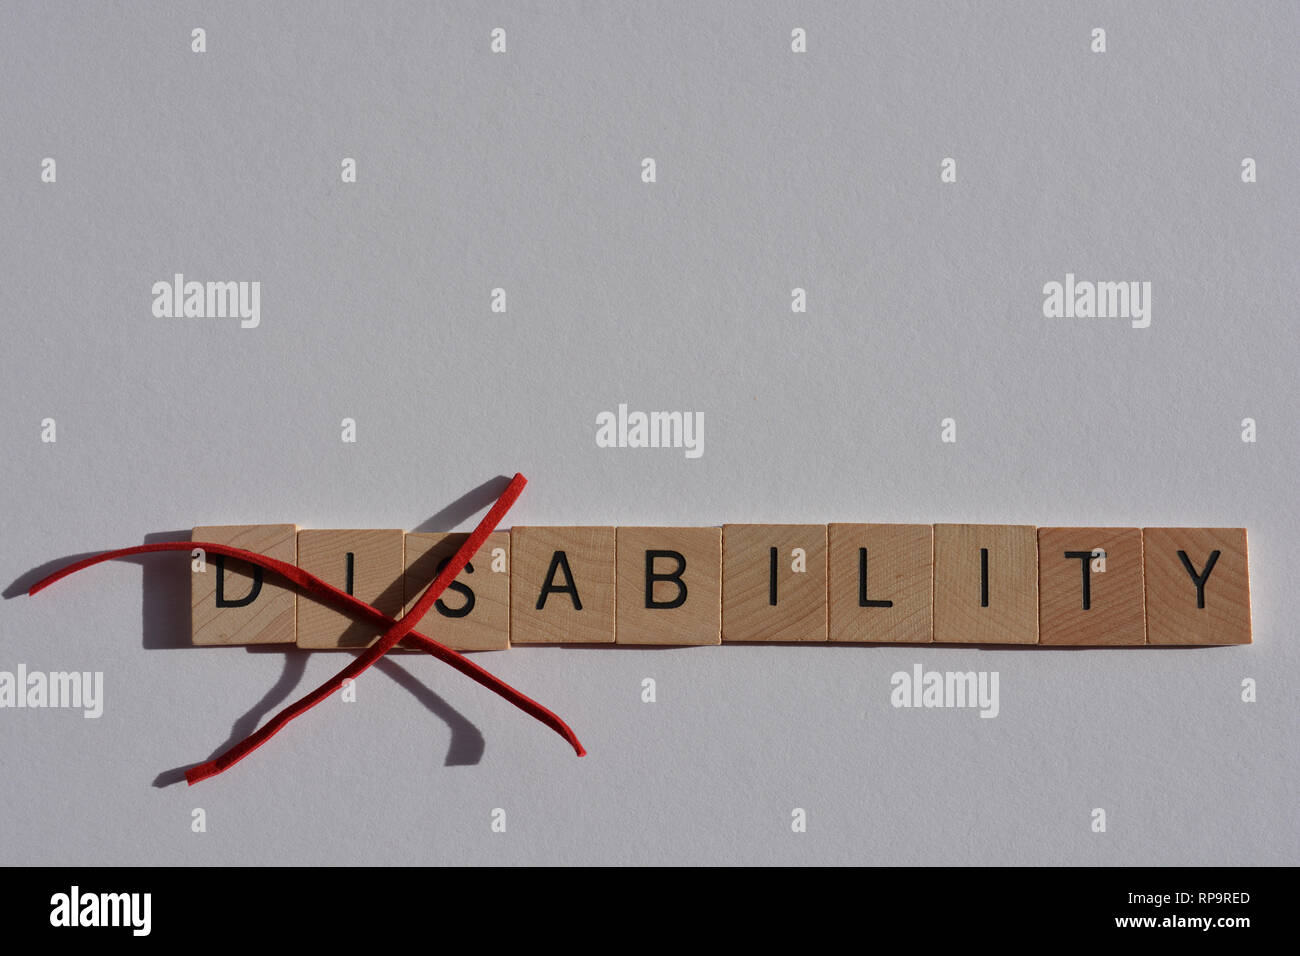 Creative Concept : Disability in wooden letters, with Dis crossed out, leaving the word Ability - Stock Image